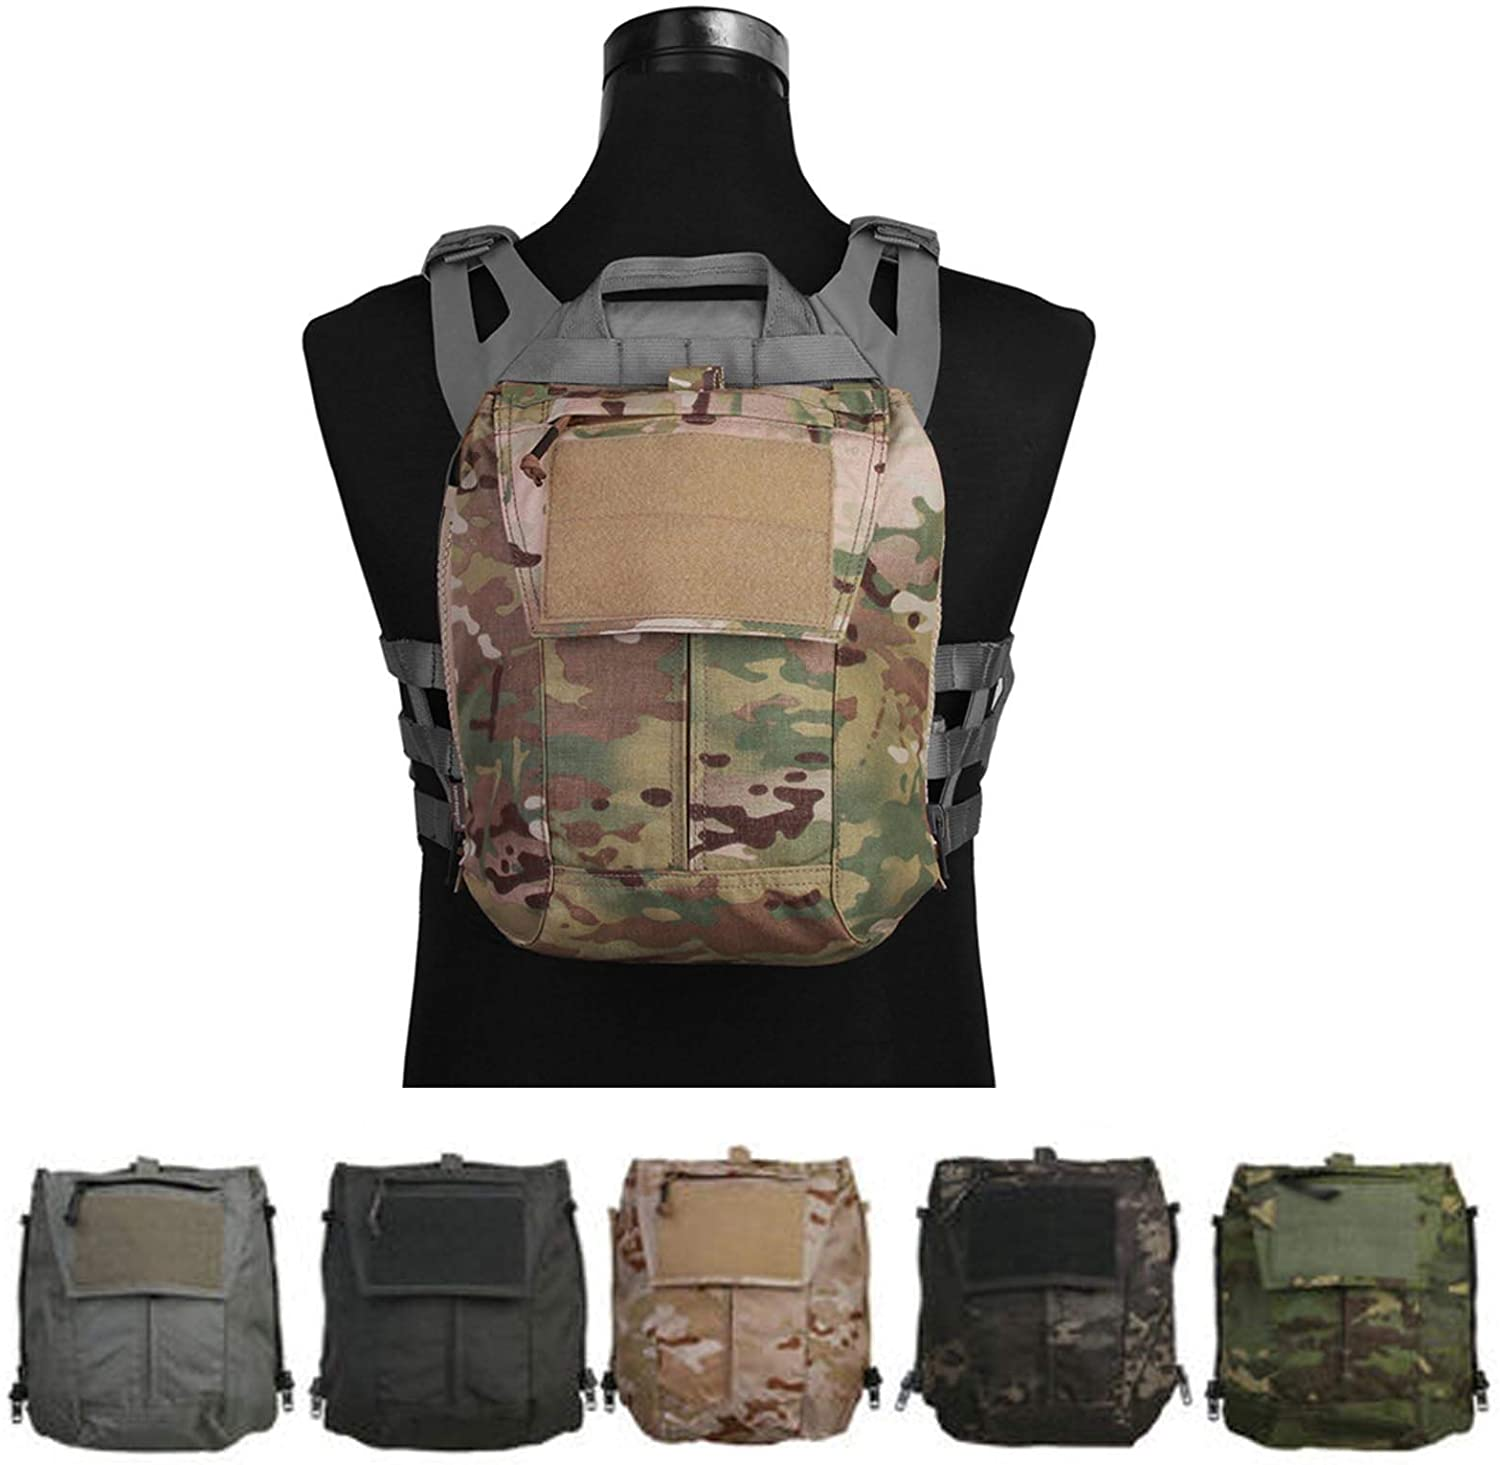 Tactical Pouch Zip-ON Panel for レビューを書けば送料当店負担 Vest Plate CP AVS Carrier JPC2.0 クリアランスsale 期間限定